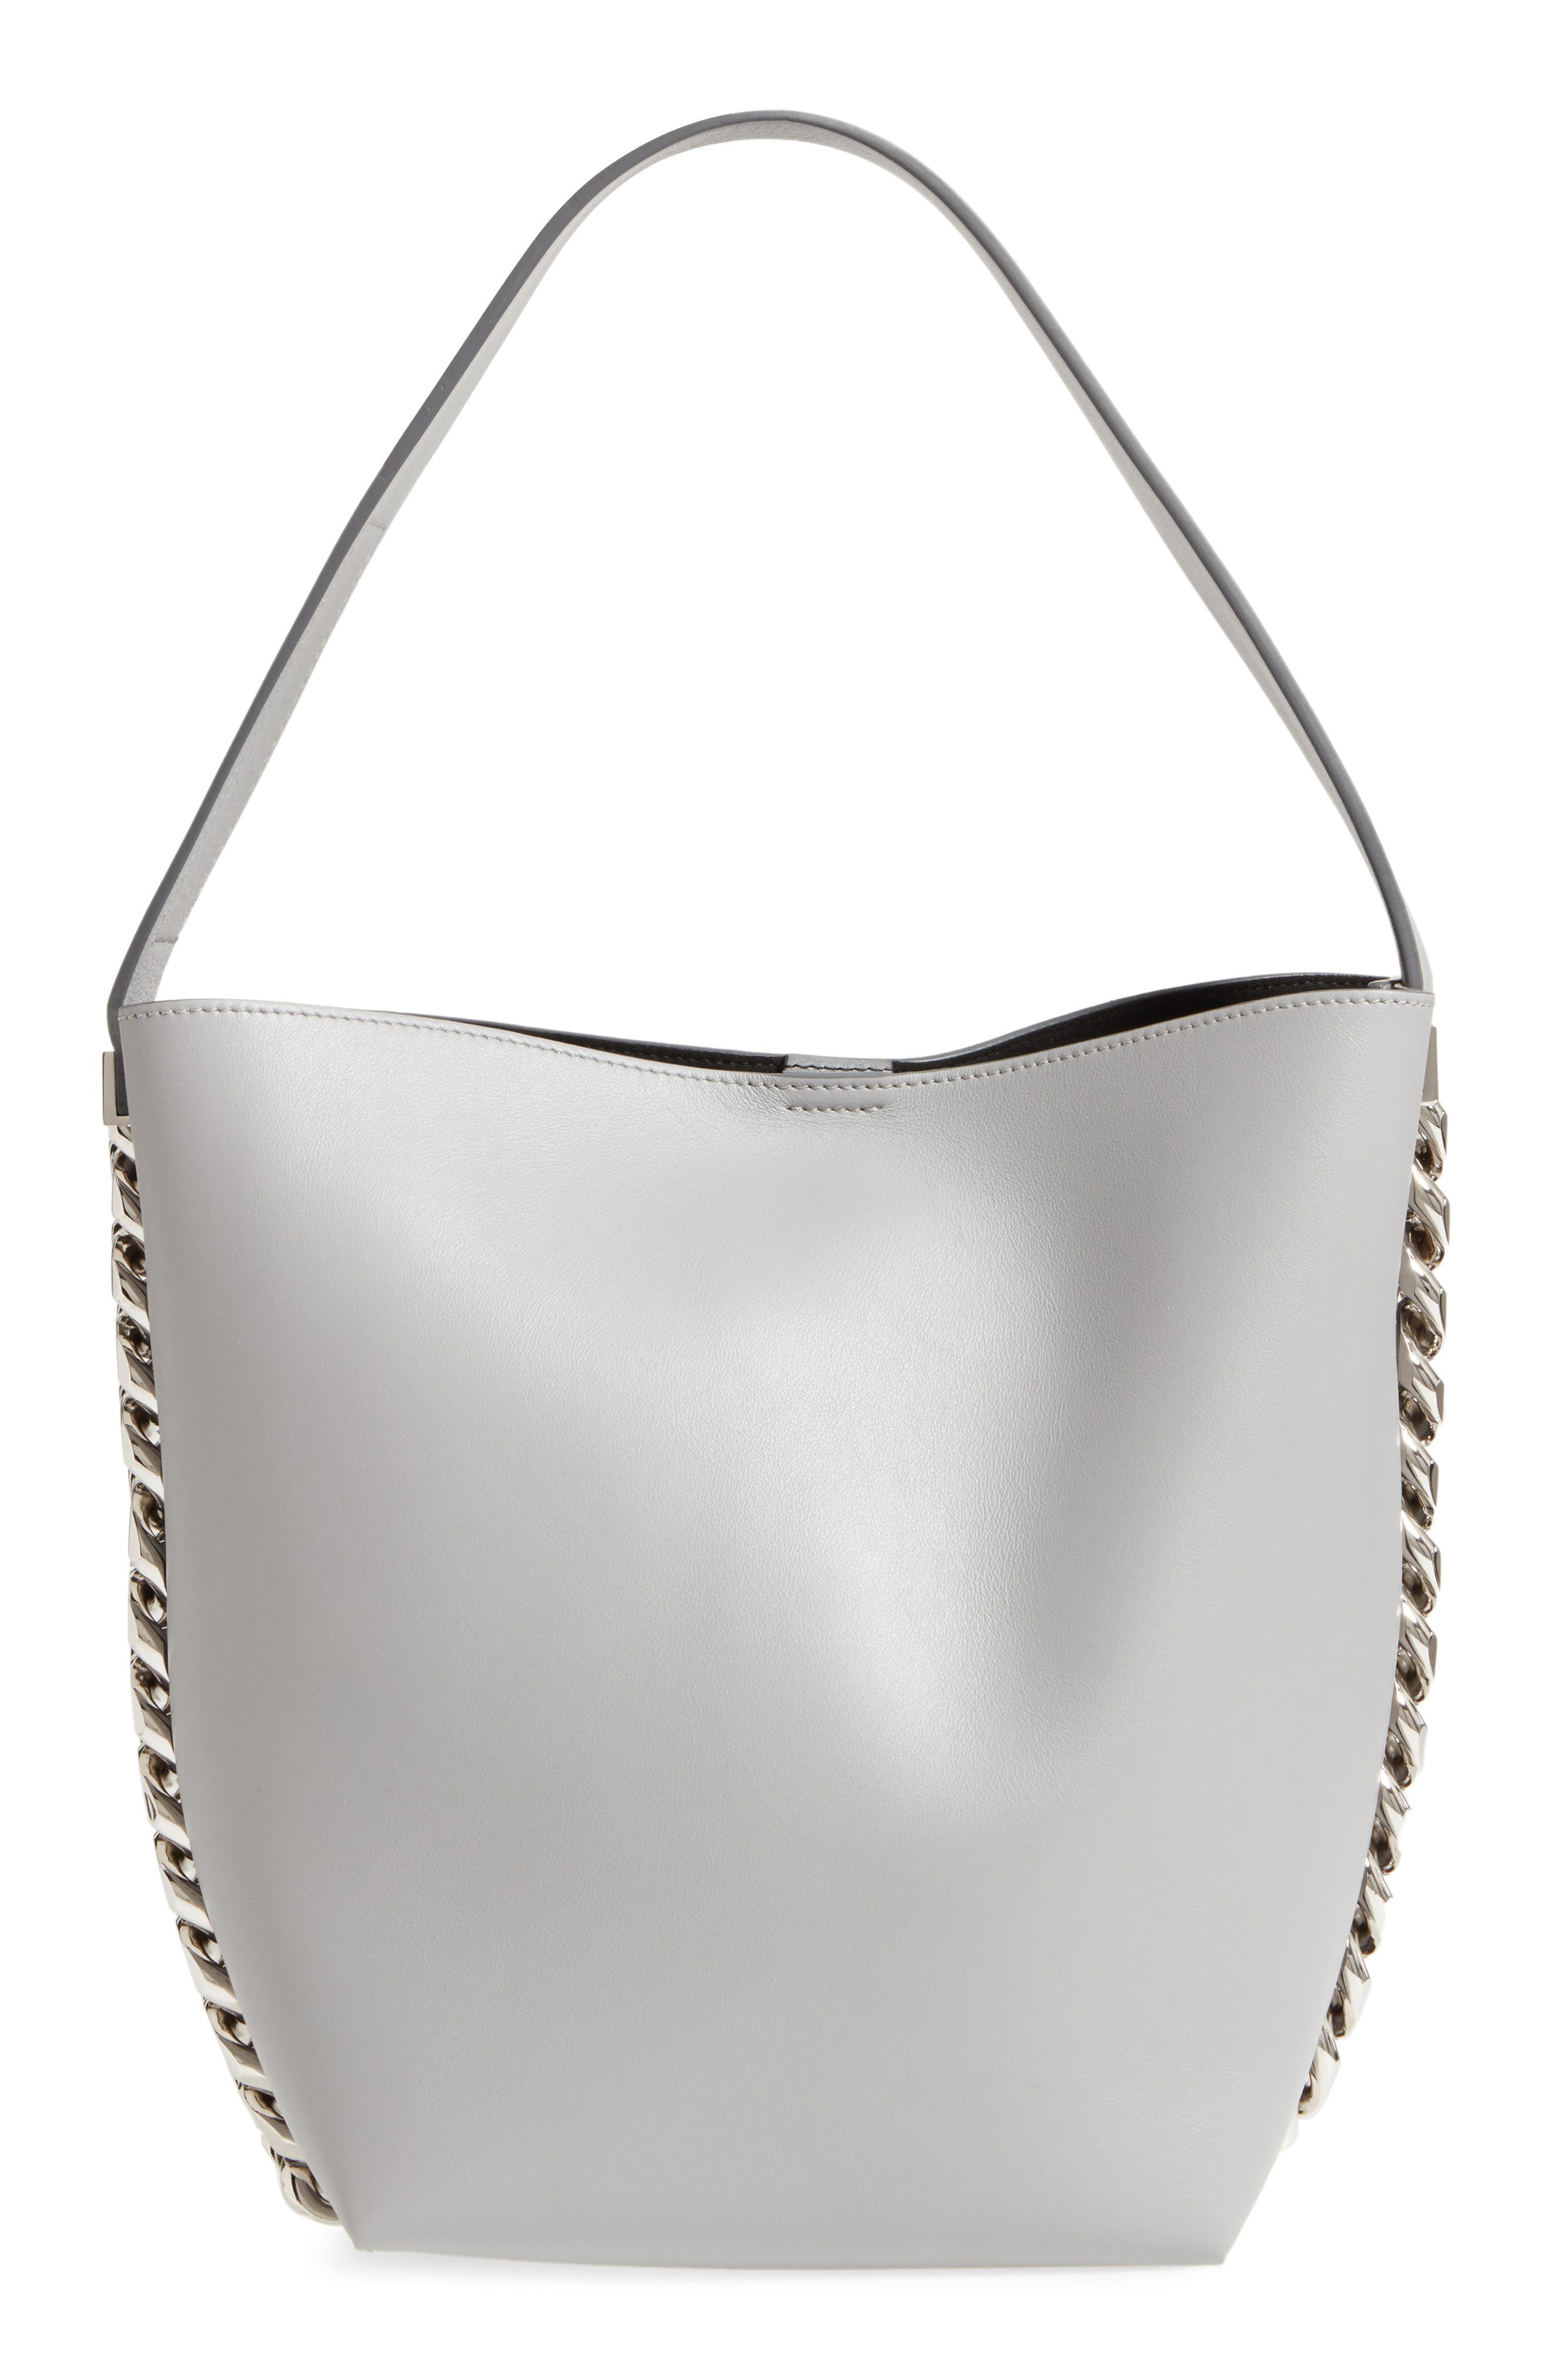 Main Image - Givenchy Infinity Calfskin Leather Bucket Bag